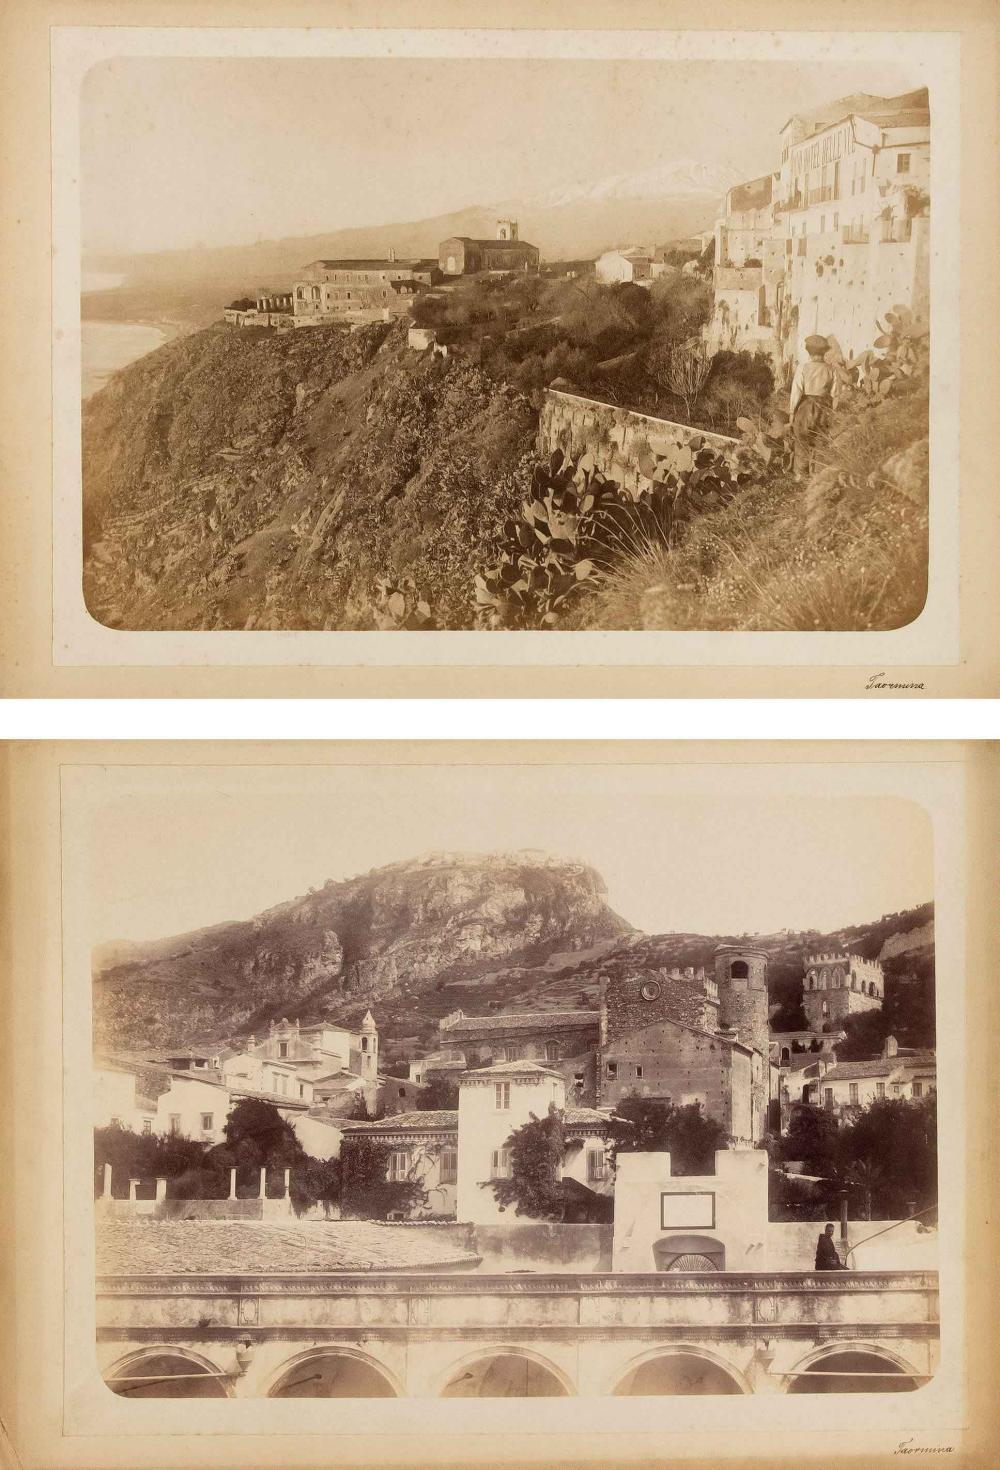 Two 19th century photographs w